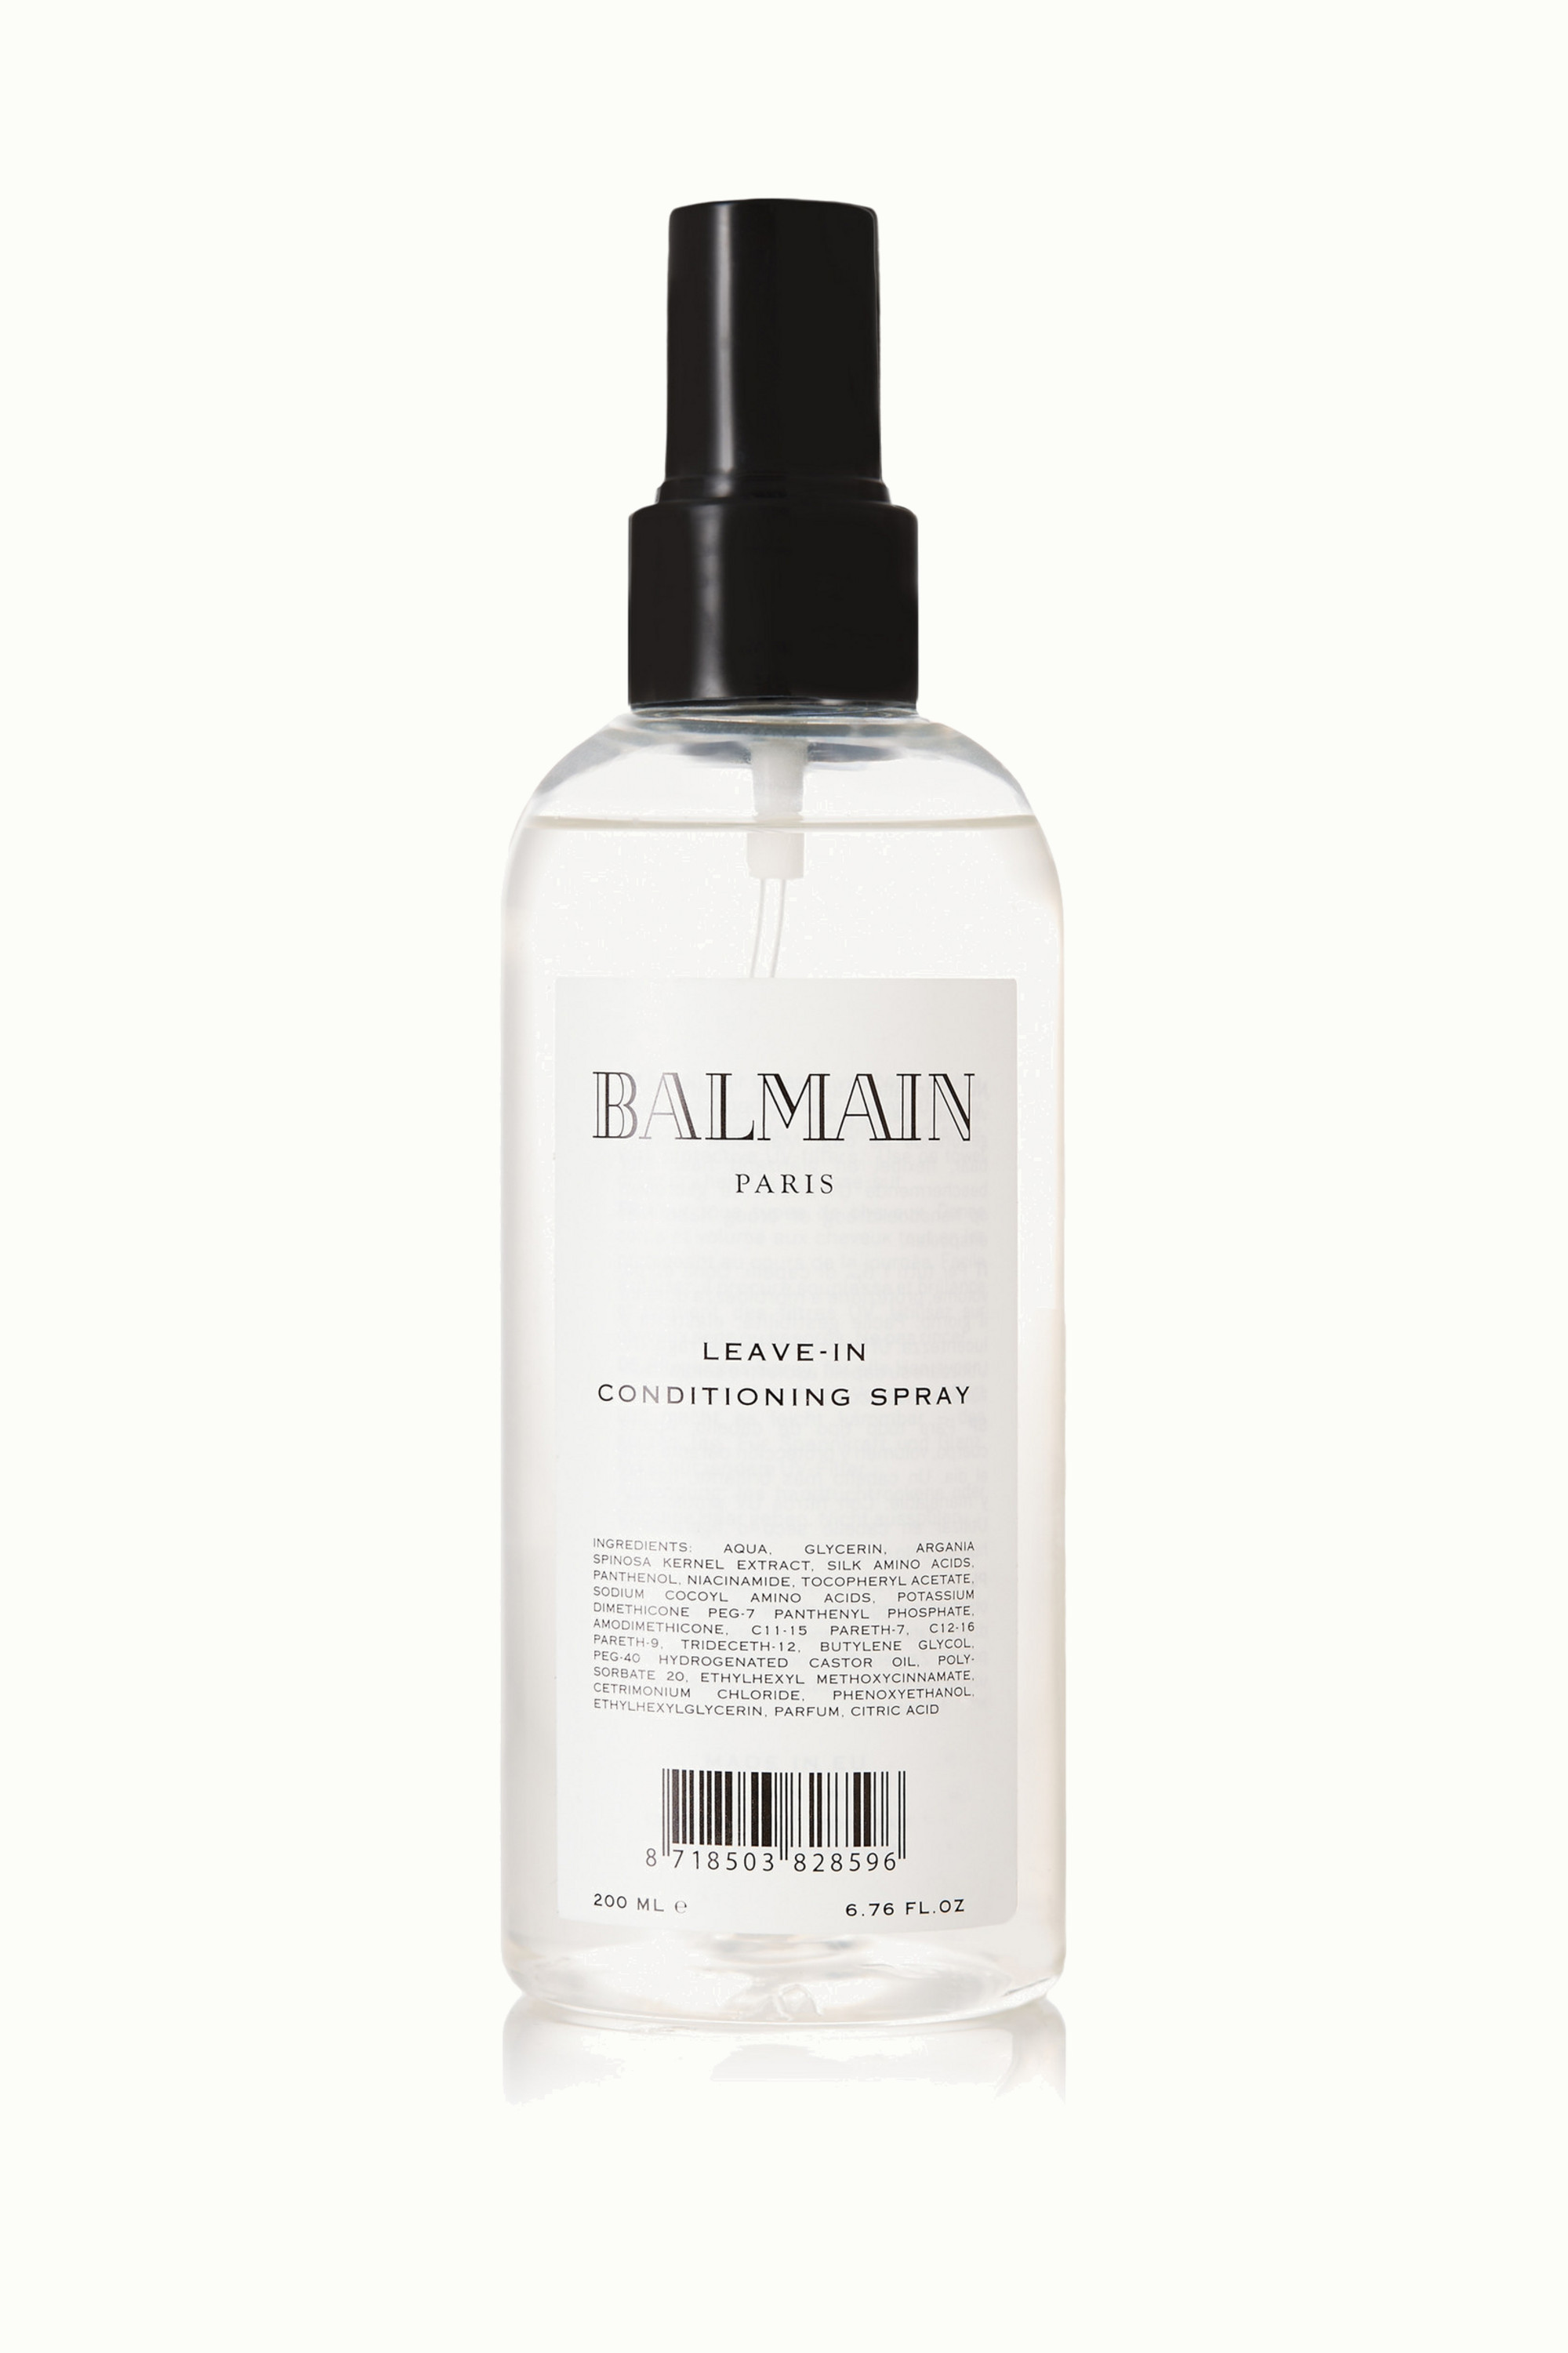 Balmain Paris Hair Couture Leave-In Conditioning Spray, 200ml